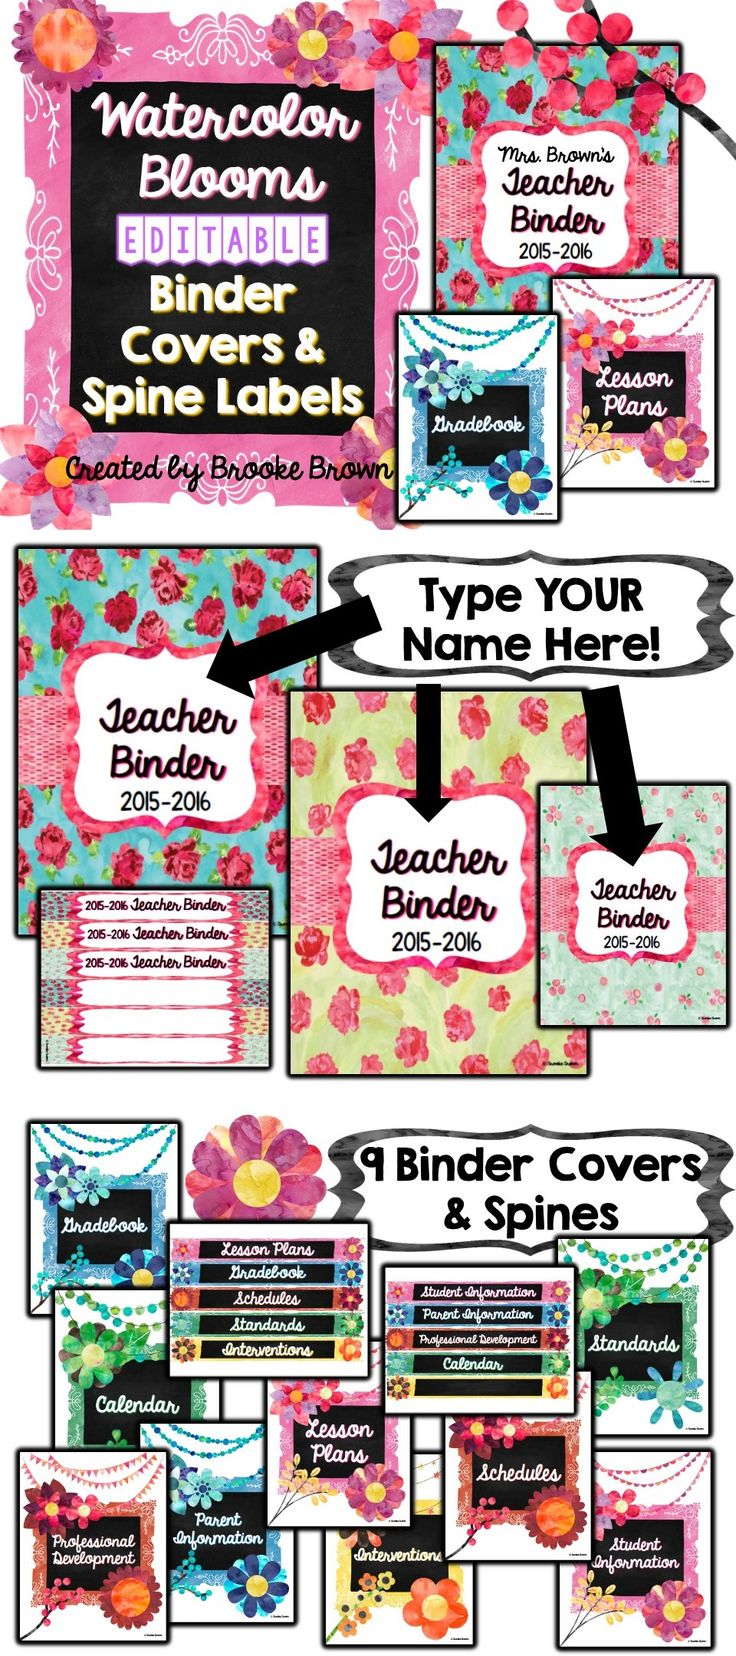 **FREE SURPRISE IN THE PREVIEW!** Watercolor Blooms Binder Covers & Spine Labels {EDITABLE!}